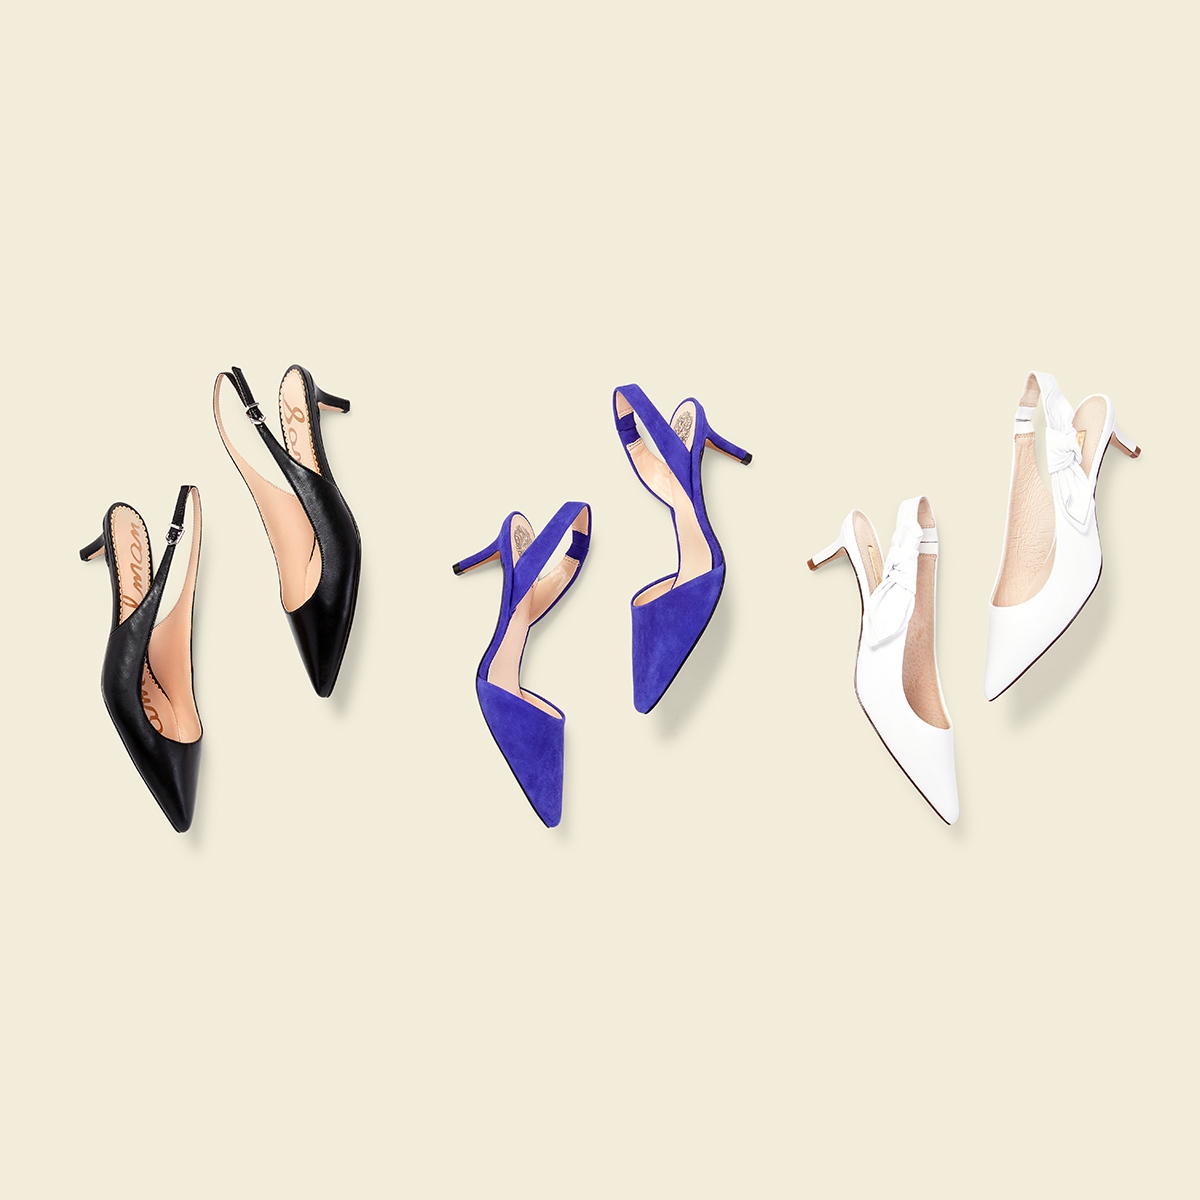 Three pairs of kitten heels - one white, one black and one in royal blue suede - laid flat on a cream background.